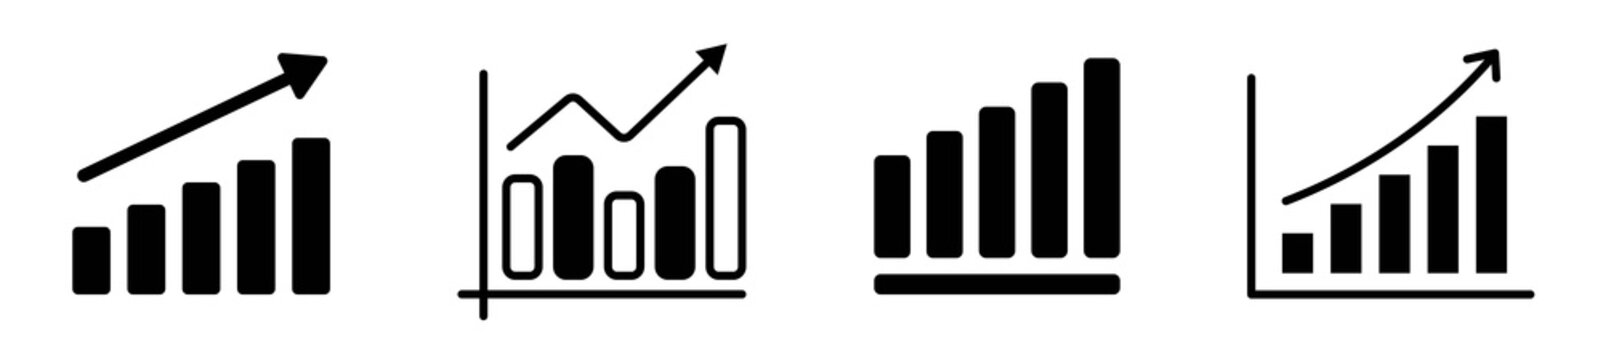 Set of growing bar graph icon in black on a white background